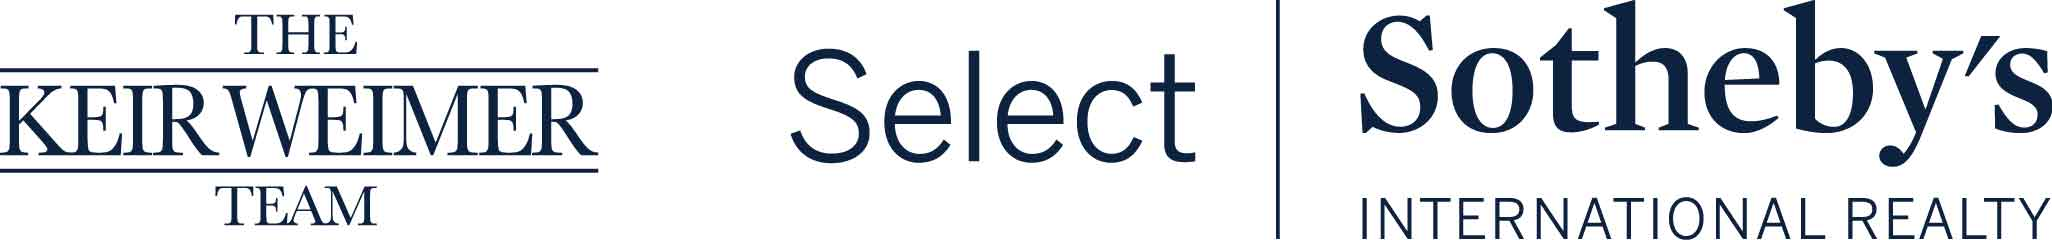 Select Sotheby's International Realty logo